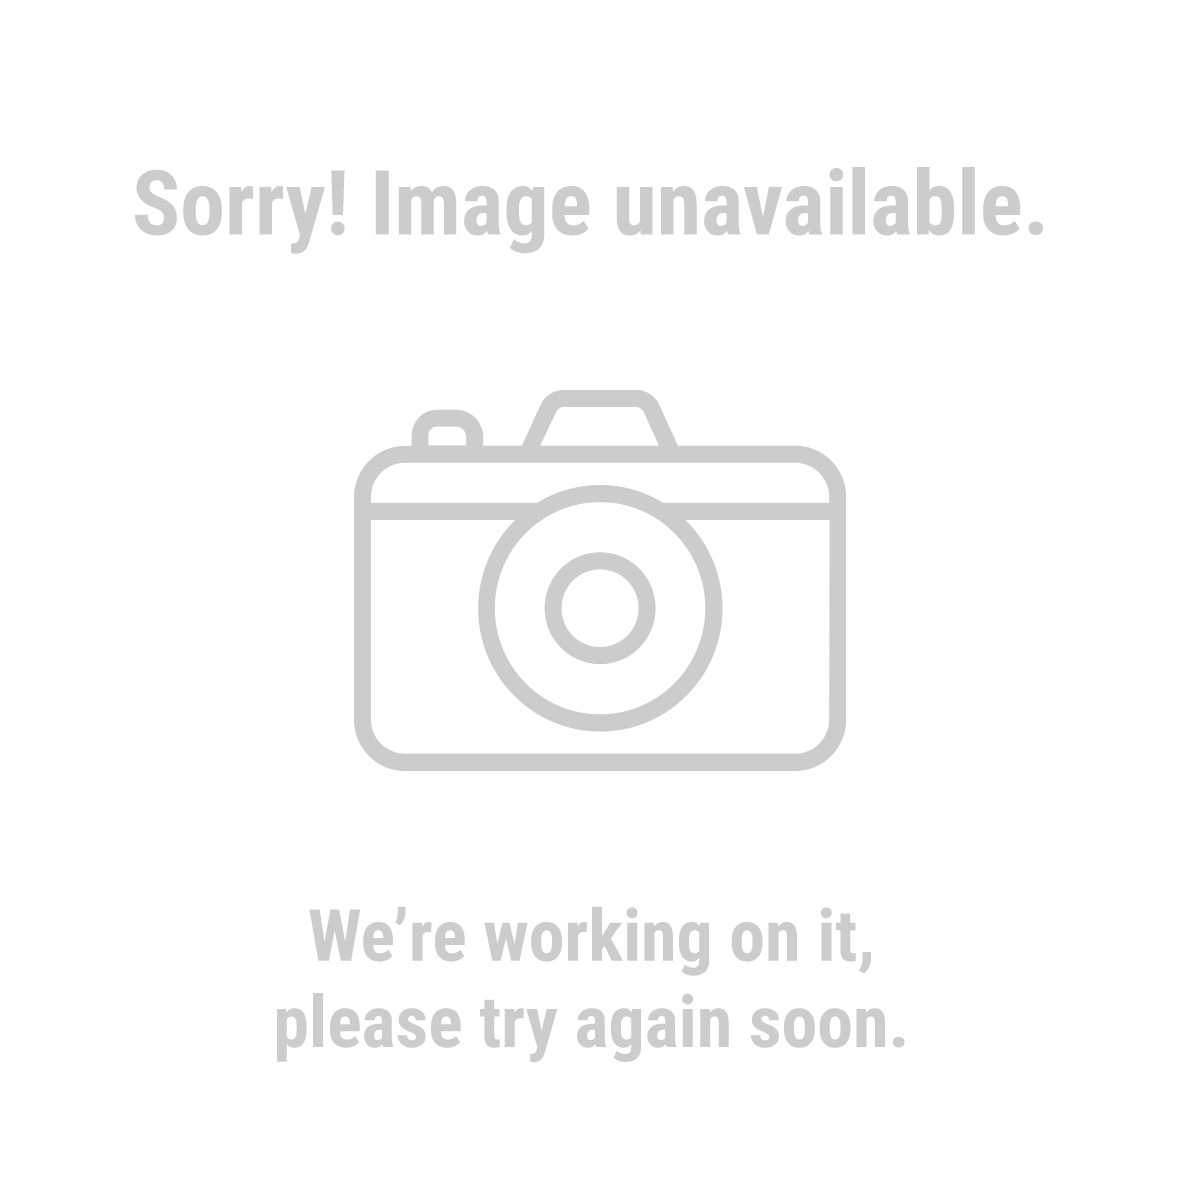 Haul-Master® 69646 1000 Lb. Steel Loading Ramps, Set of Two